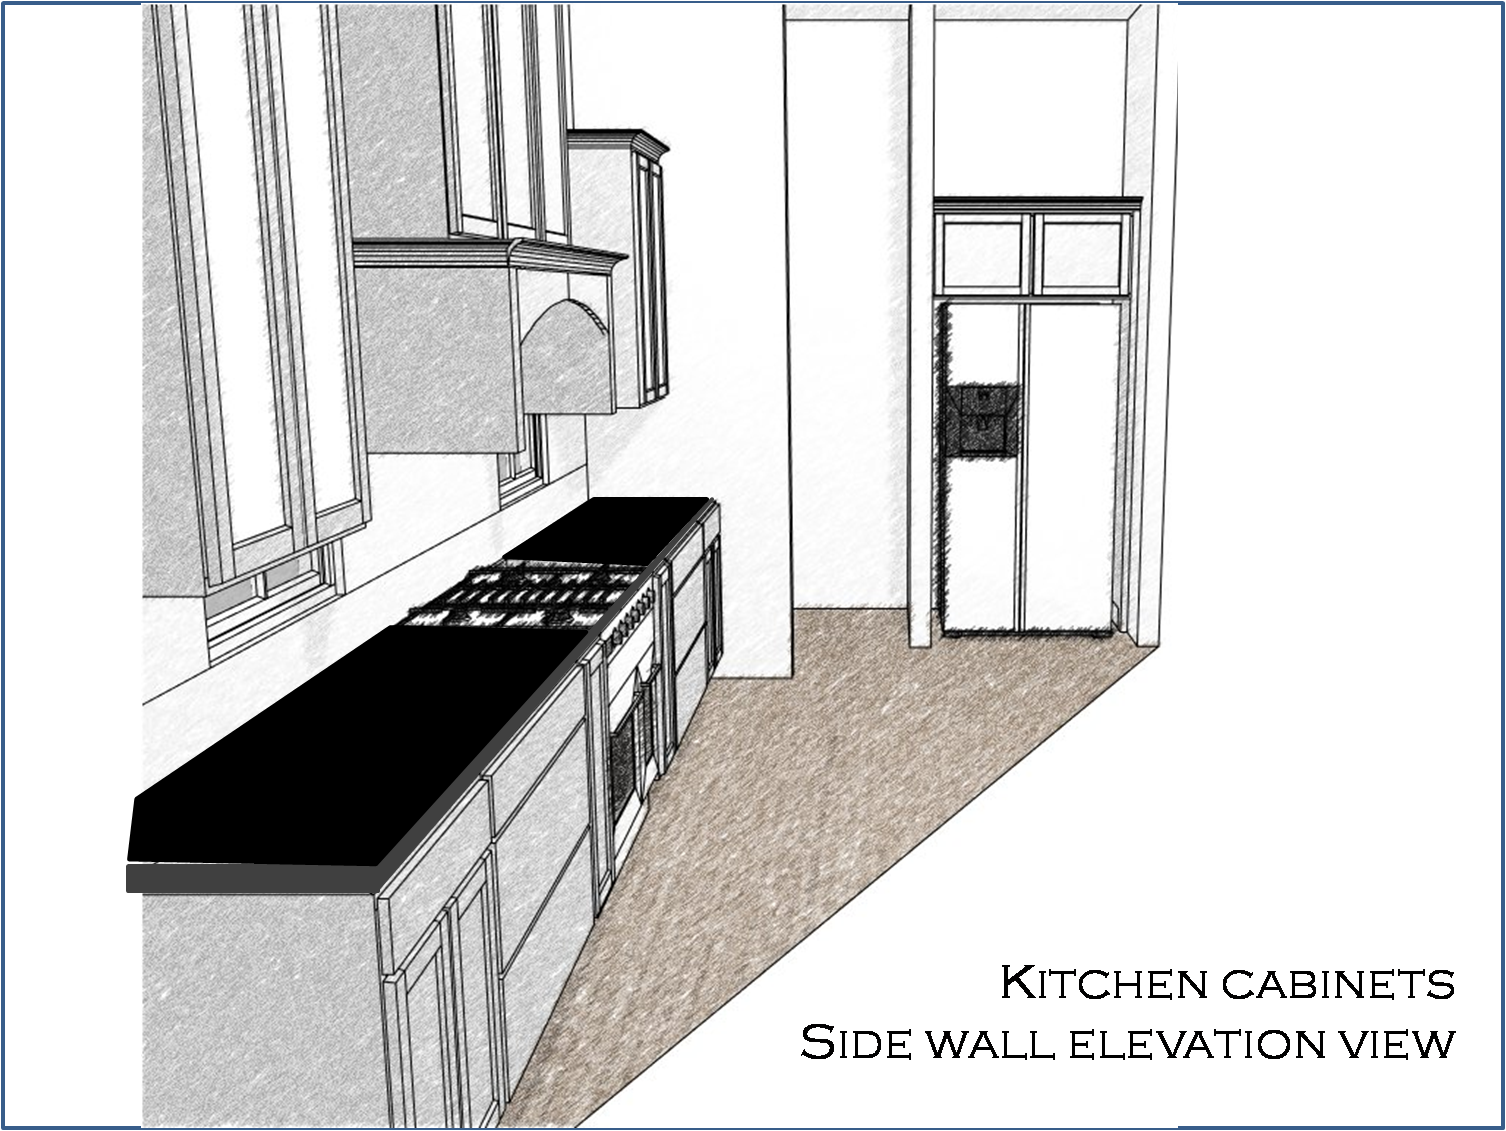 Kitchen Cabinets Side Elevation View